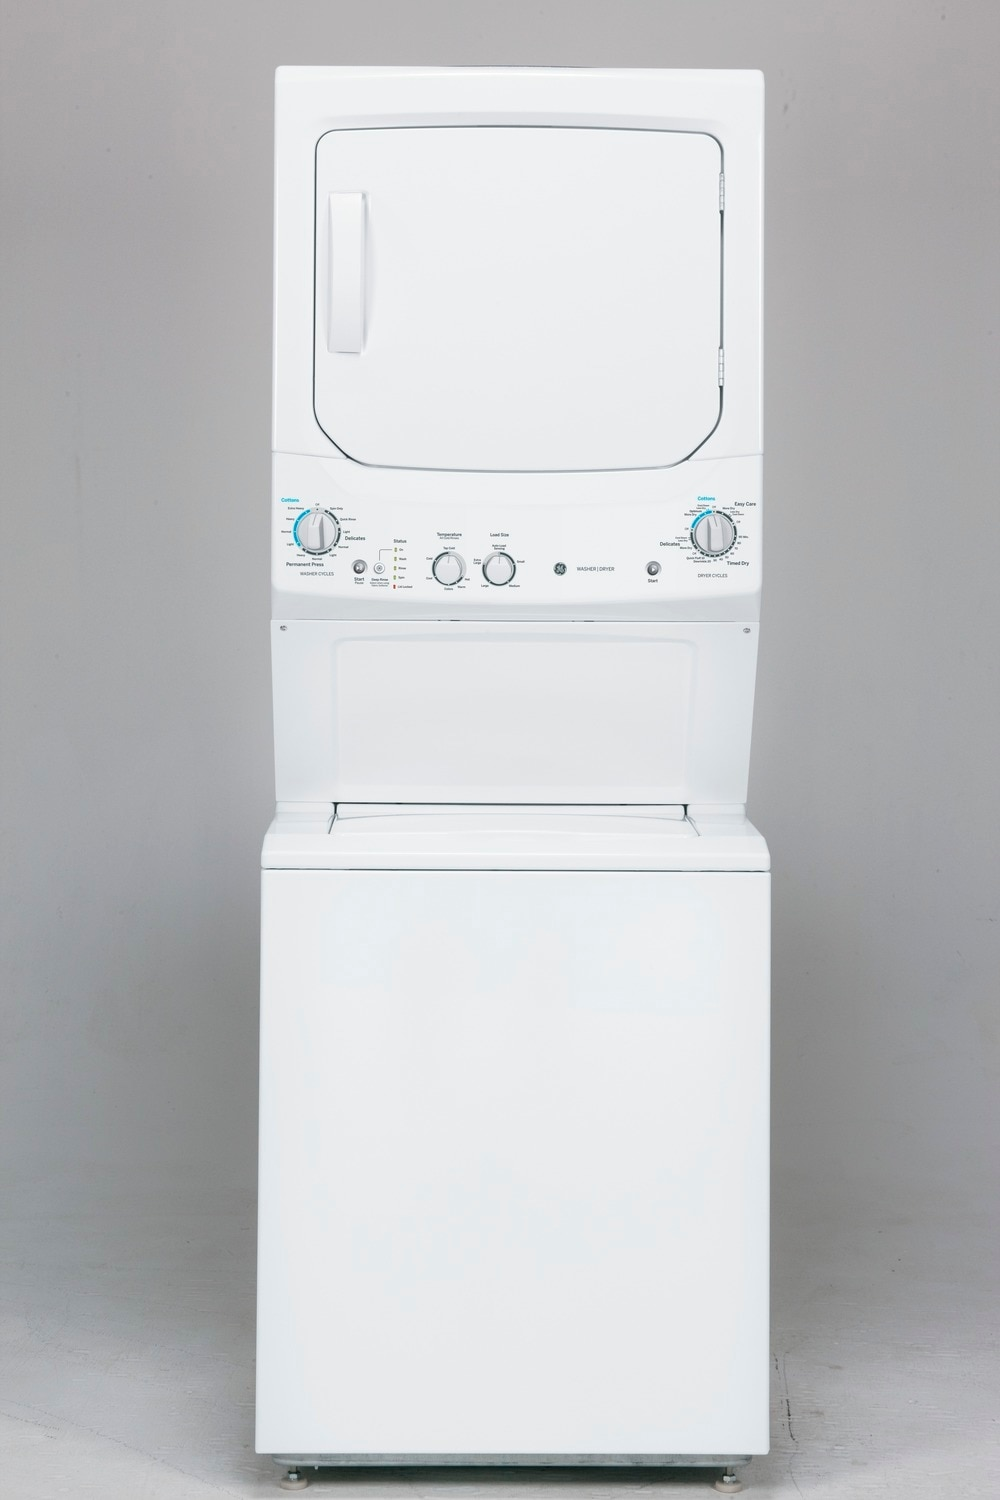 GE White Unitized Spacemaker Washer and Gas Dryer - GUD27GSSJWW